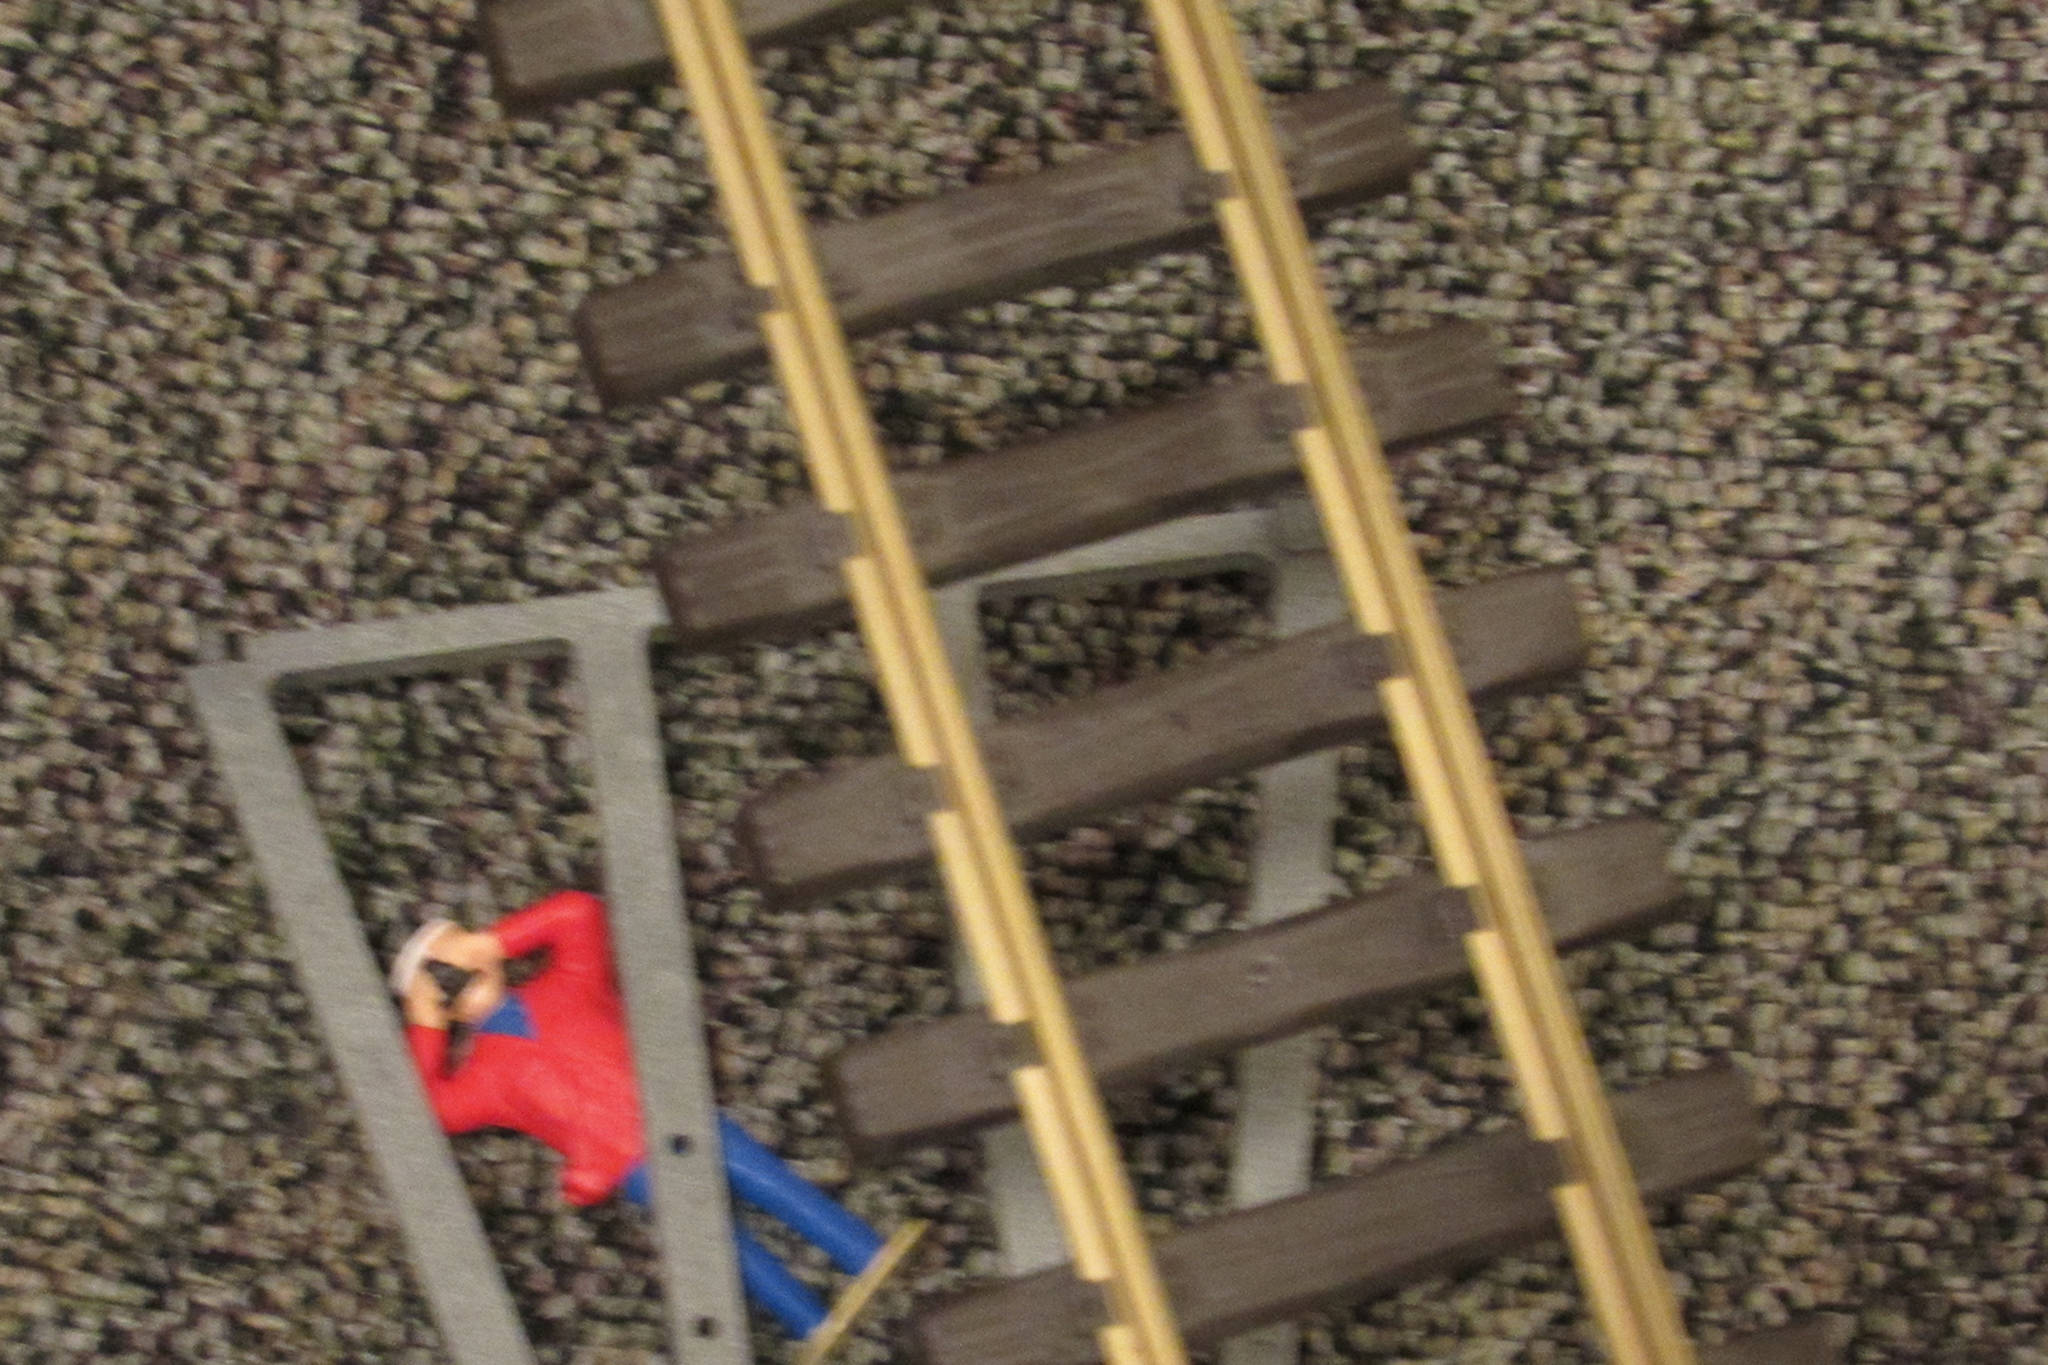 A casualty of the model railroad industry on the floor of the Juneau-Douglas City Museum, Saturday, Dec. 22, 2018. (Ben Hohenstatt | Capital City Weekly)